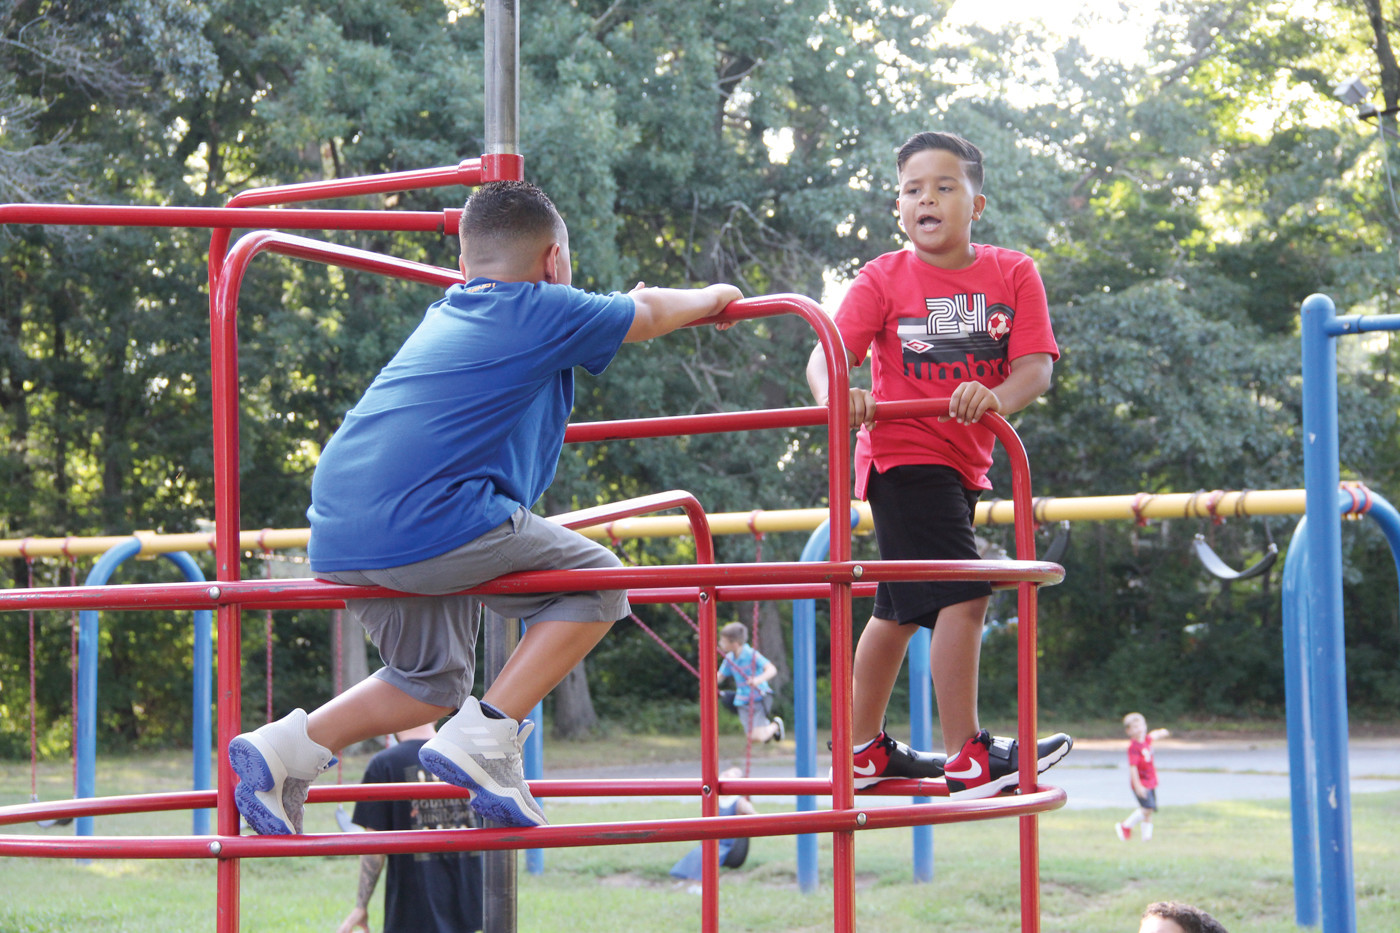 NEVER TOO HOT: Sherman students took to the jungle gym as they waited for doors to open.